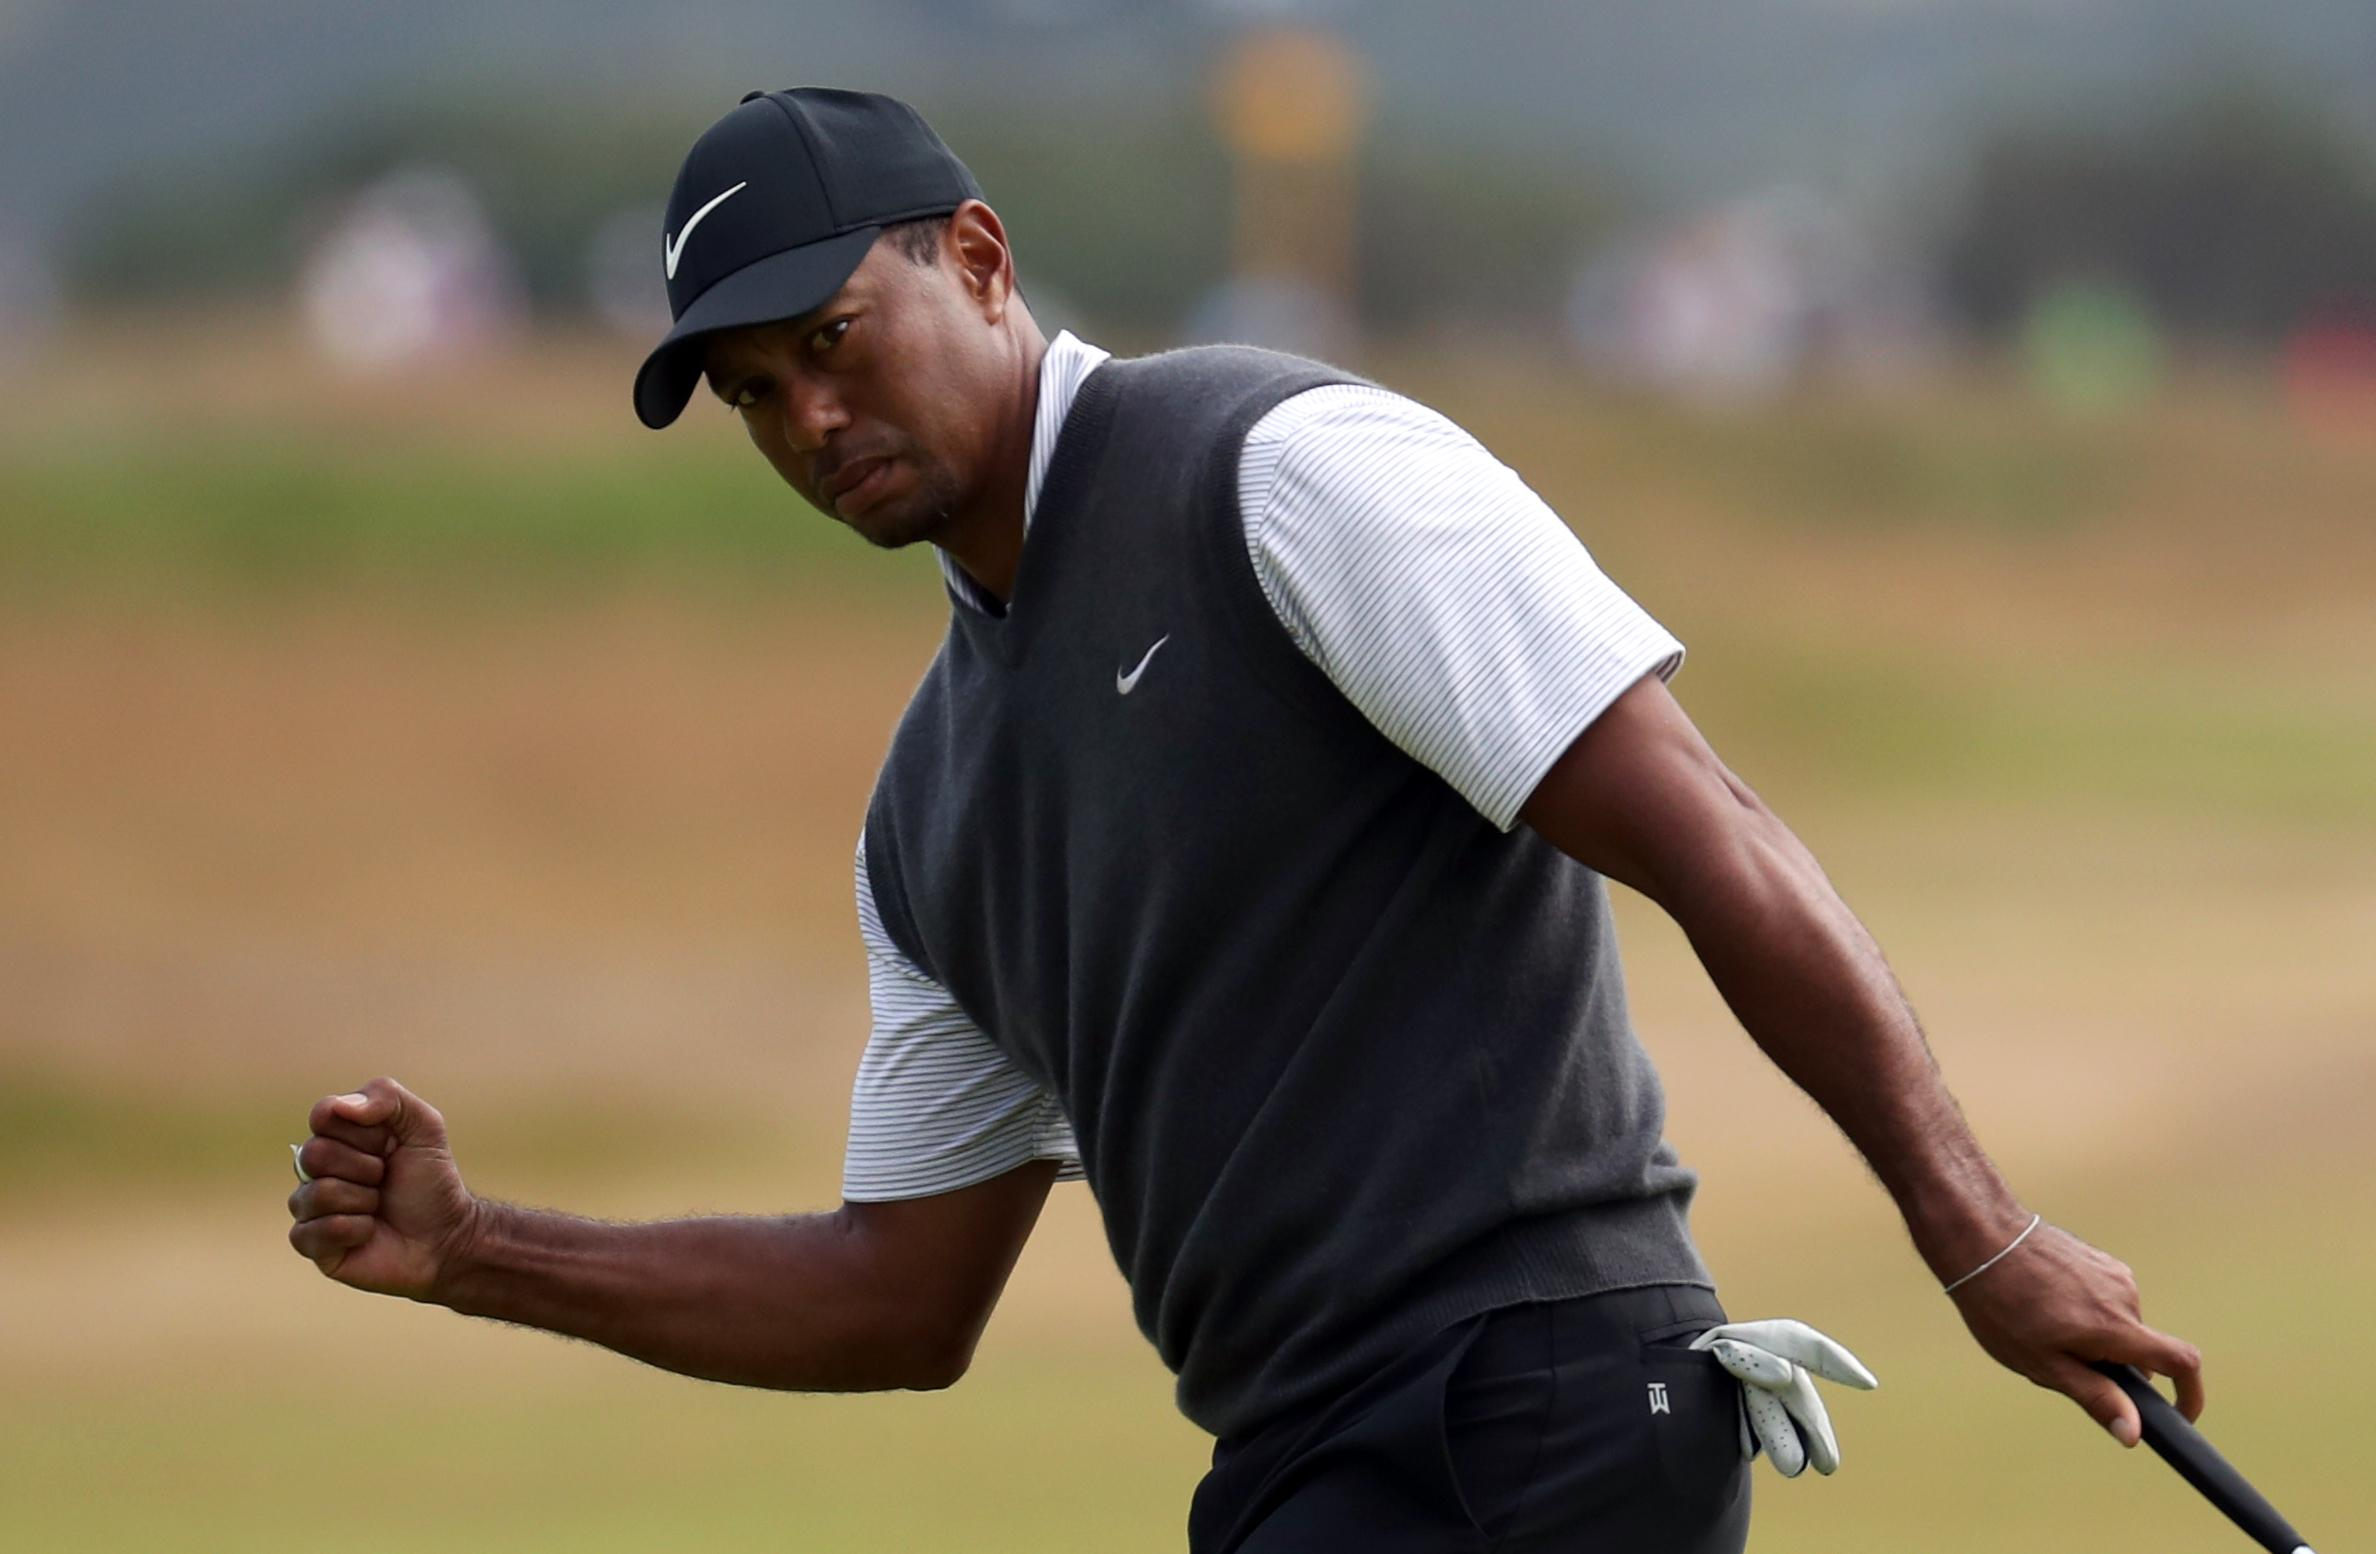 Tiger Woods lit up Carnoustie as he surged into contention